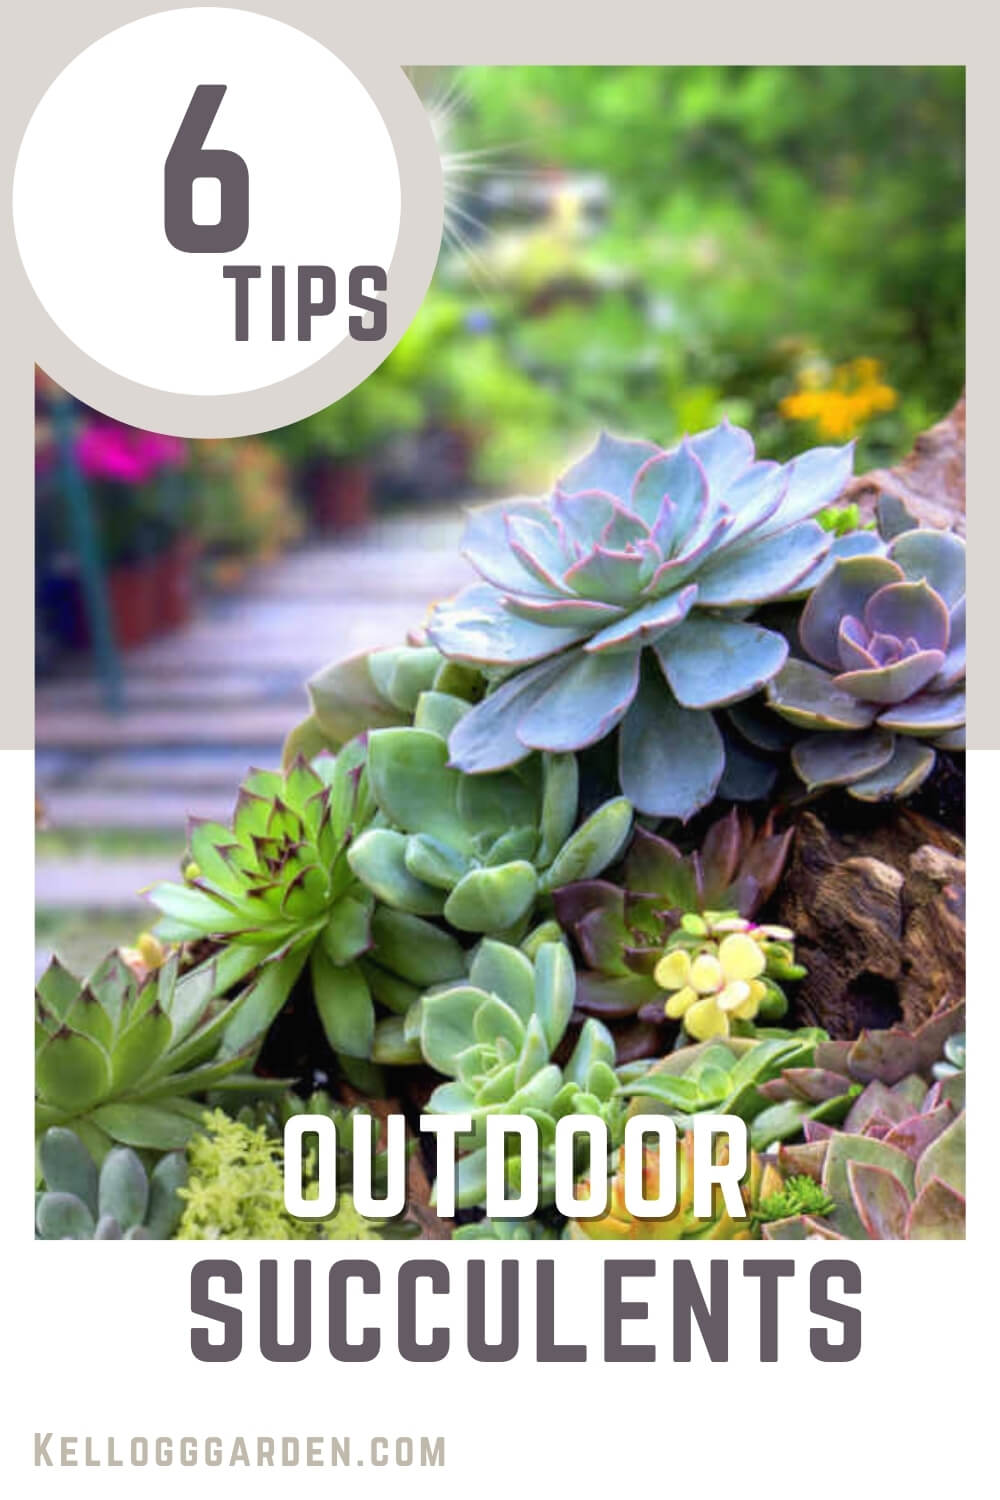 Succulents with text '6 tips outdoor succulents'